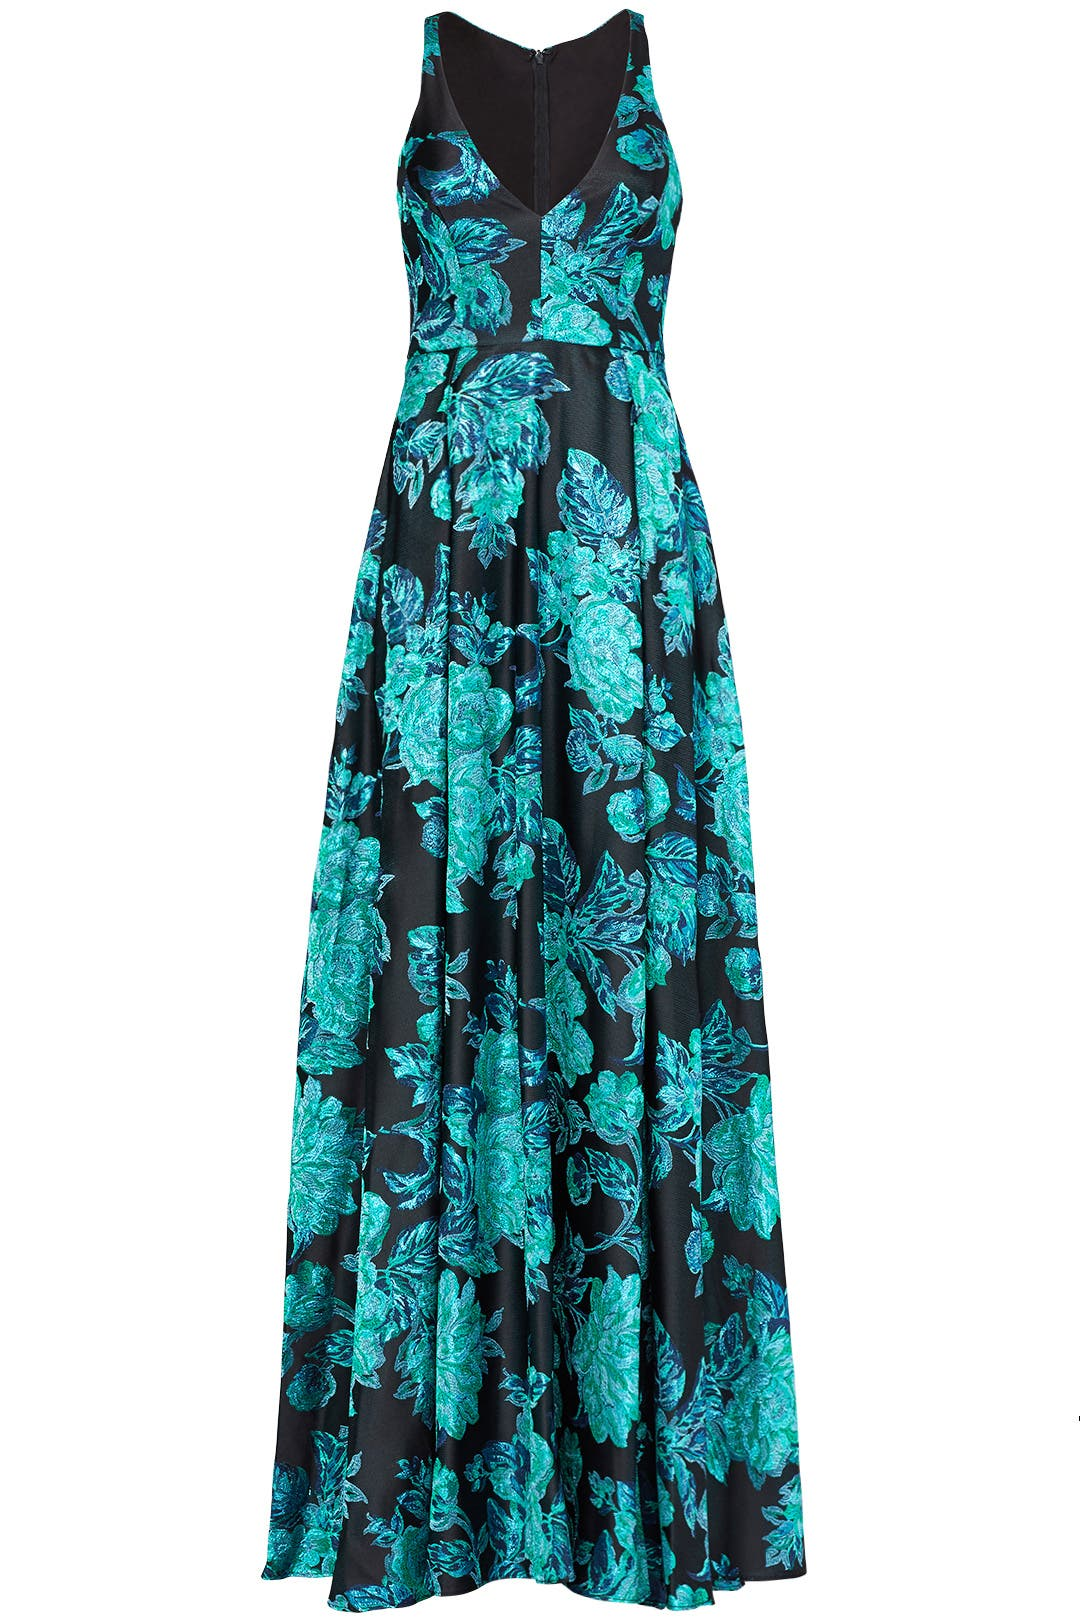 Teal Shimmer Gown by Badgley Mischka for $130 - $150 | Rent the Runway